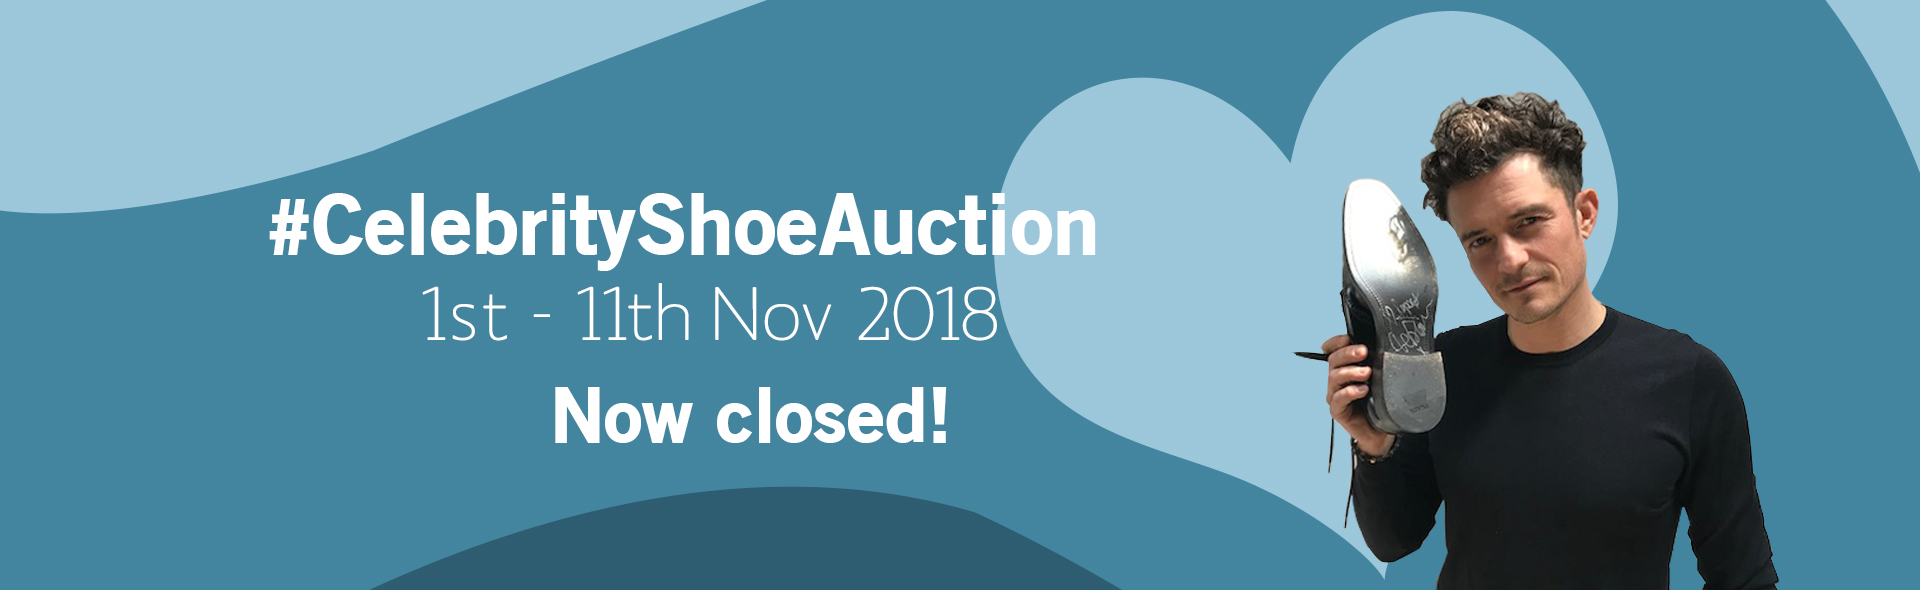 44f50fe60db Small Steps Project exists to improve the lives of waste-picker children.  This year 100 megastars have signed and donated their shoes to our  Celebrity Shoe ...